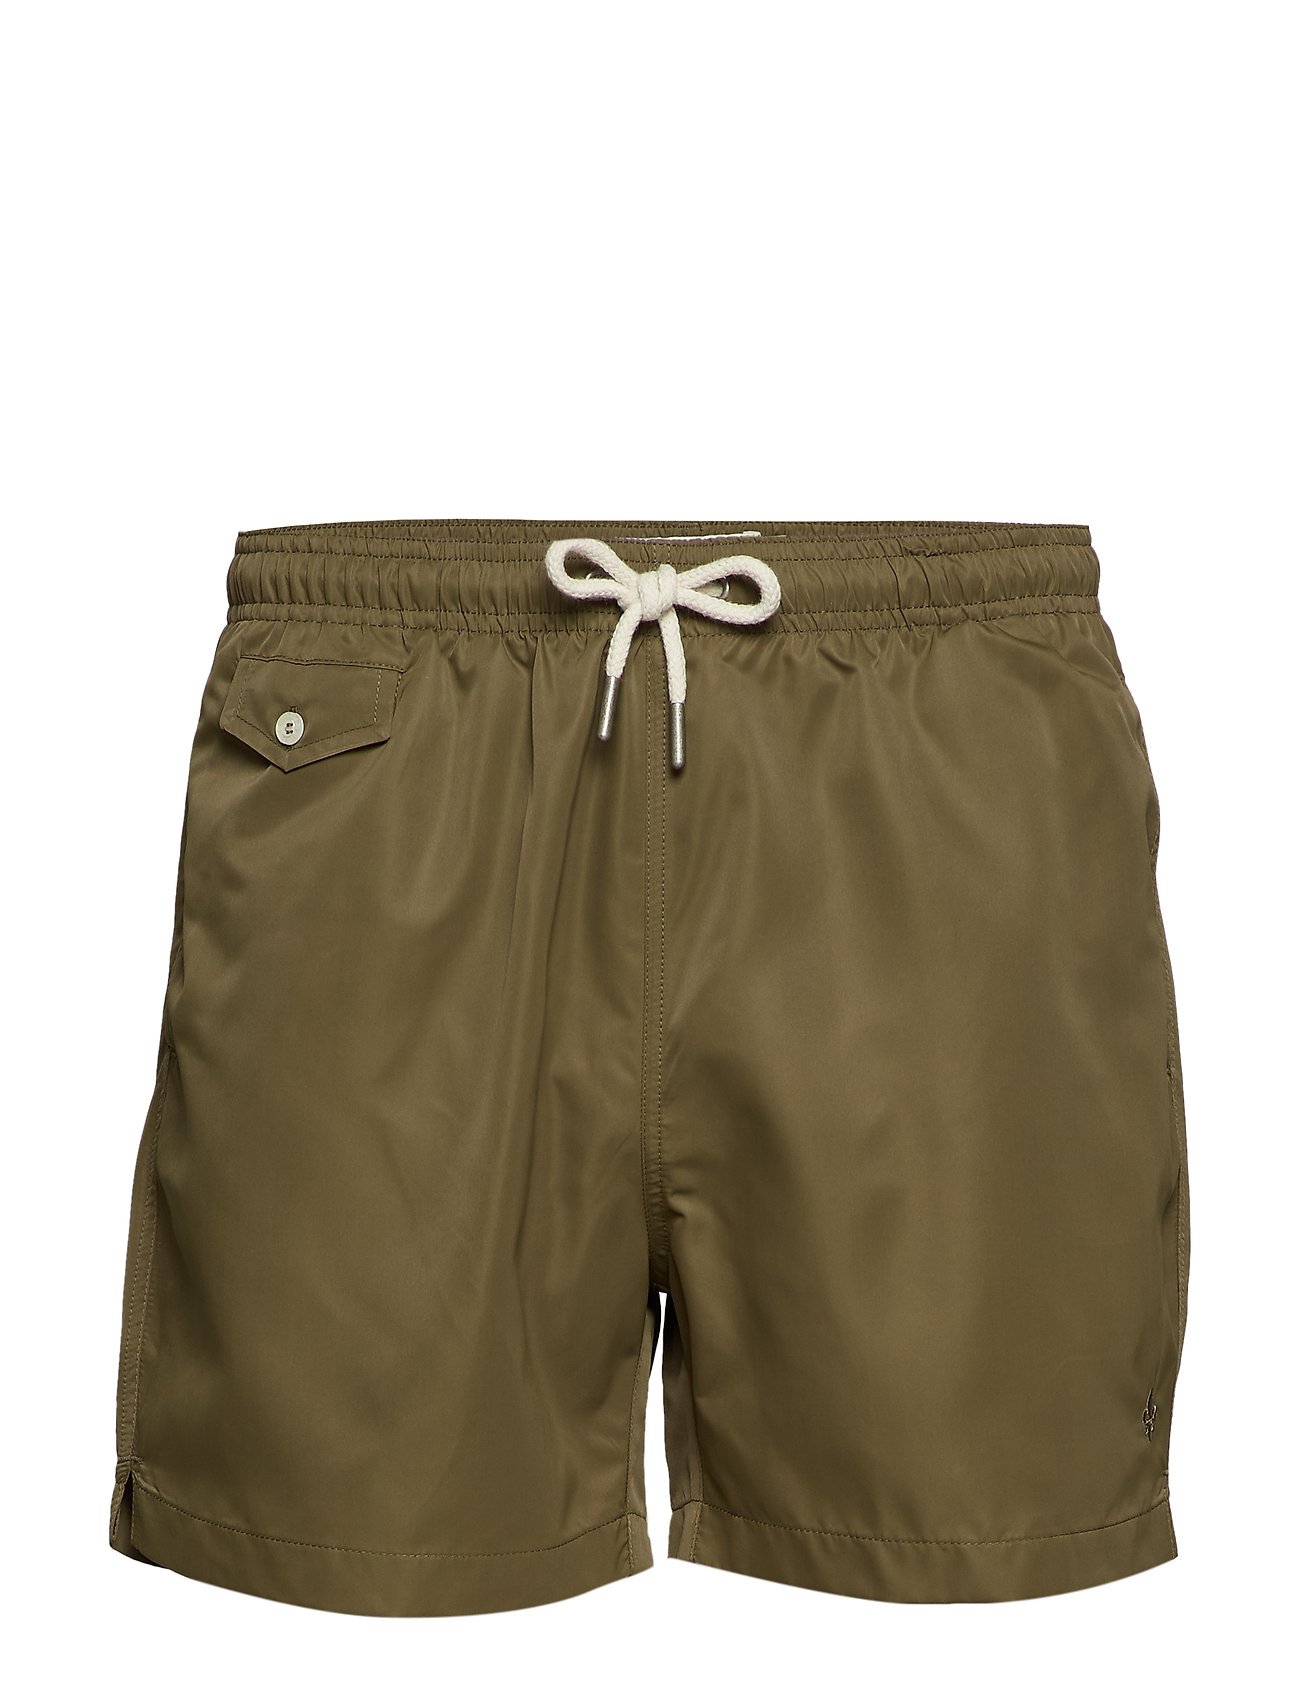 Morris Solid Bathing Trunks - OLIVE